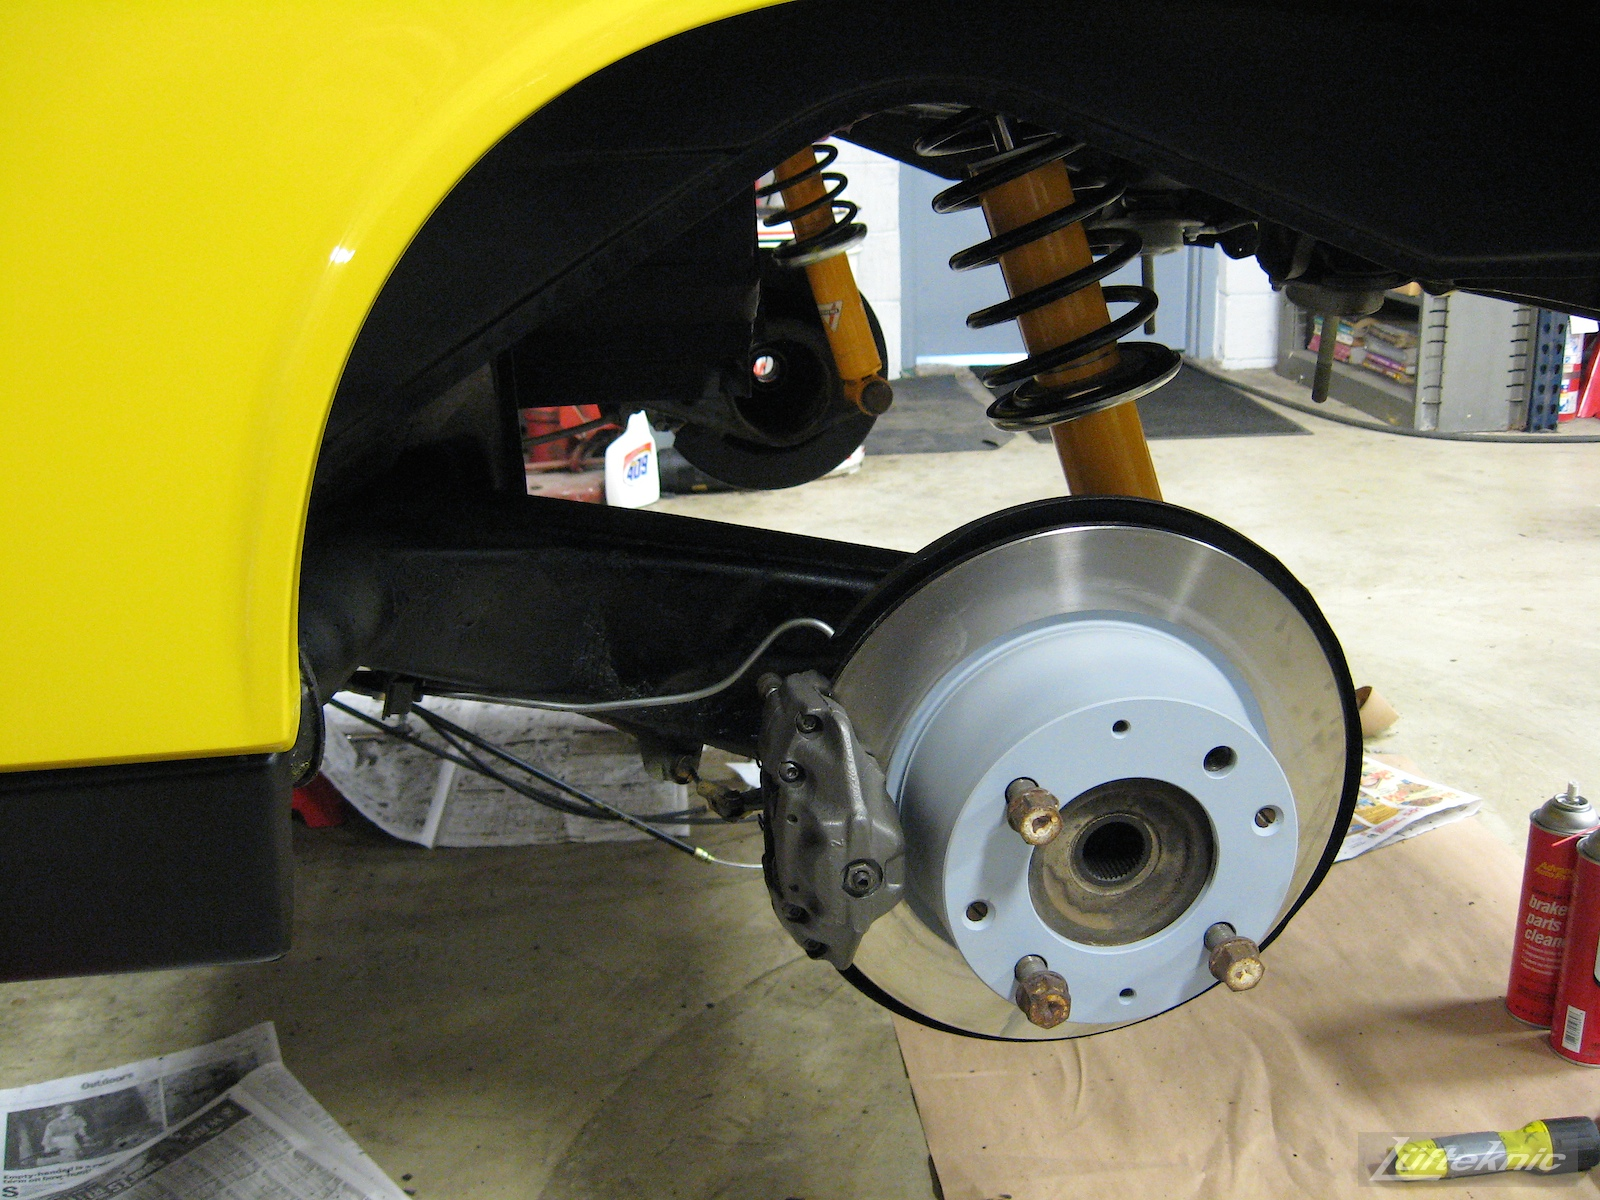 Fresh rear brakes for a restored yellow Porsche 914 at Lufteknic.